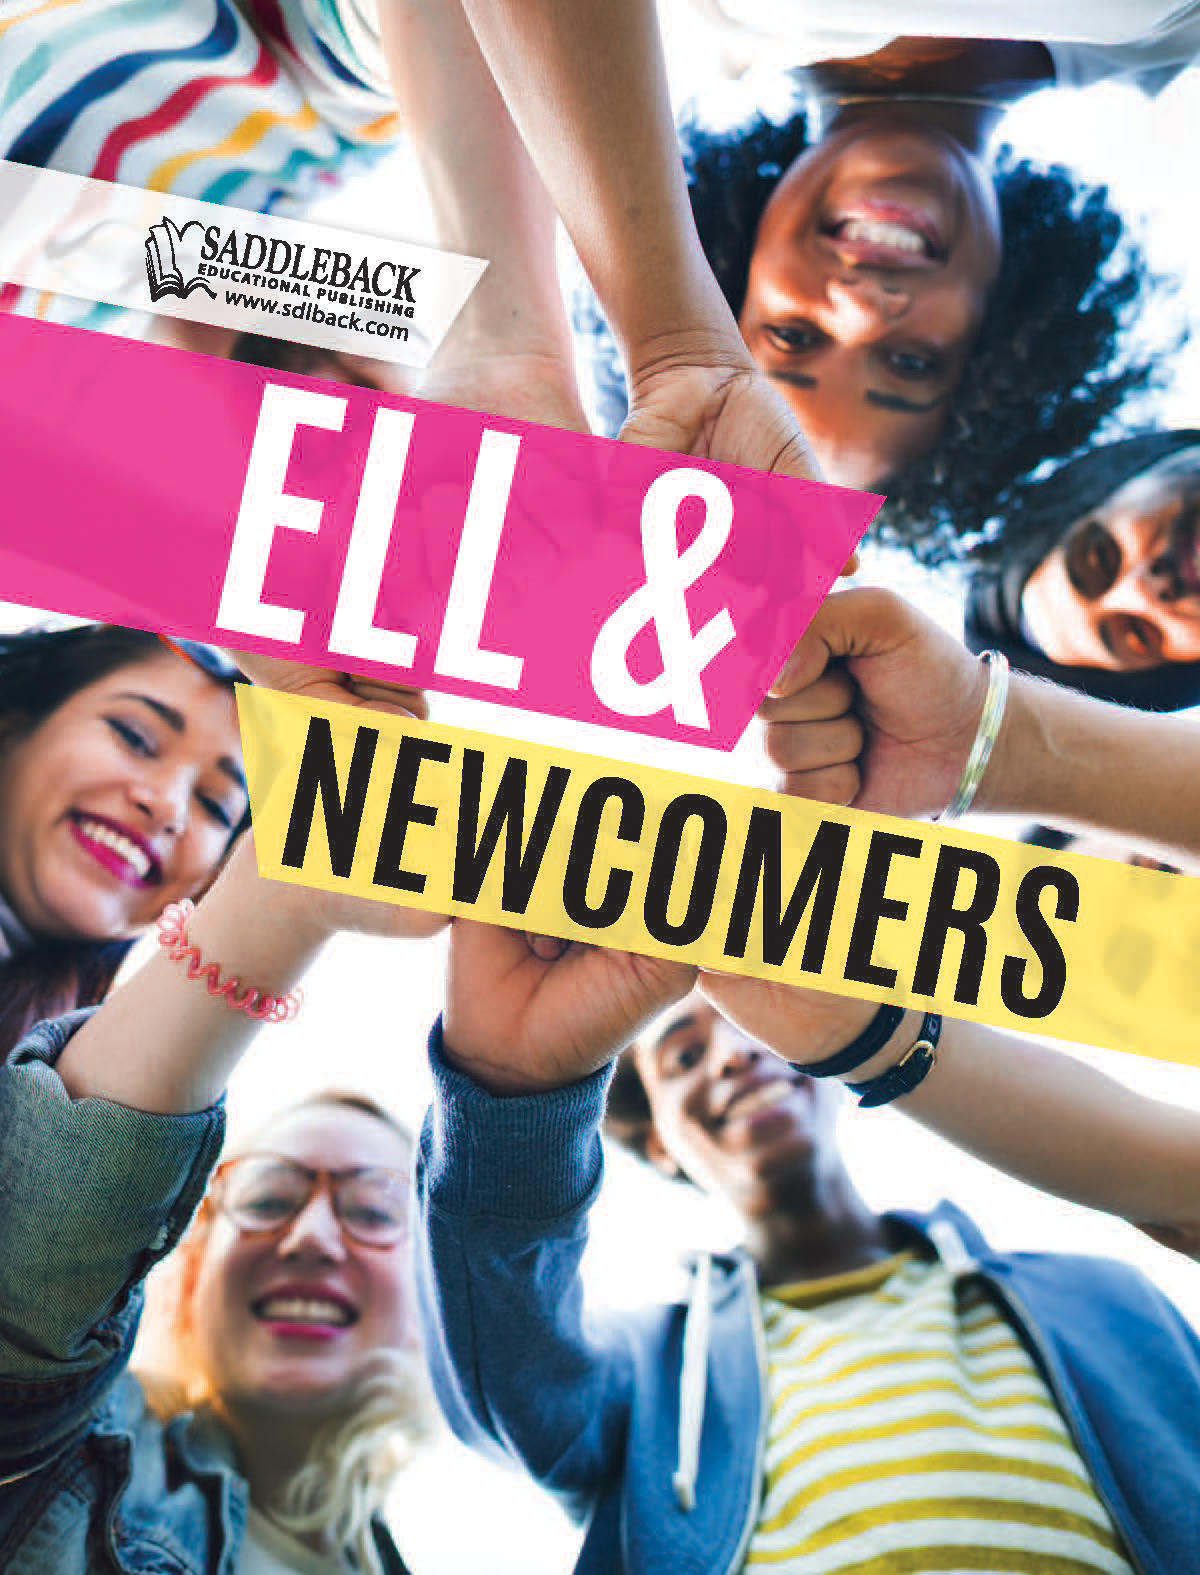 f2017-ell-and-newcomers-catalog.jpg